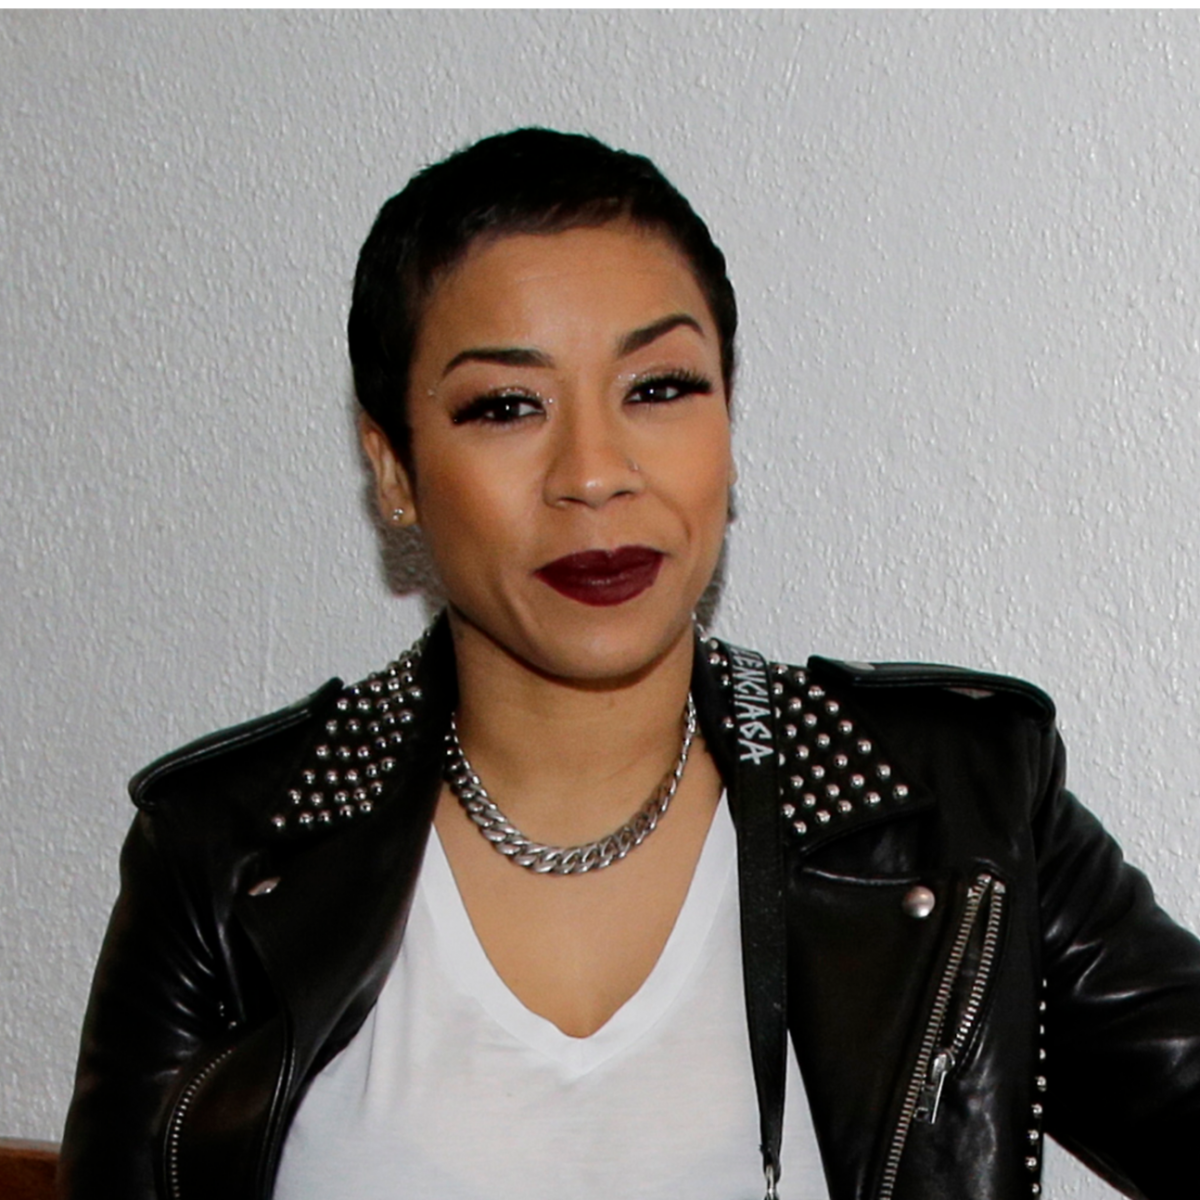 Keyshia Cole Has Found Love Again And She Has The Hickey To Prove It